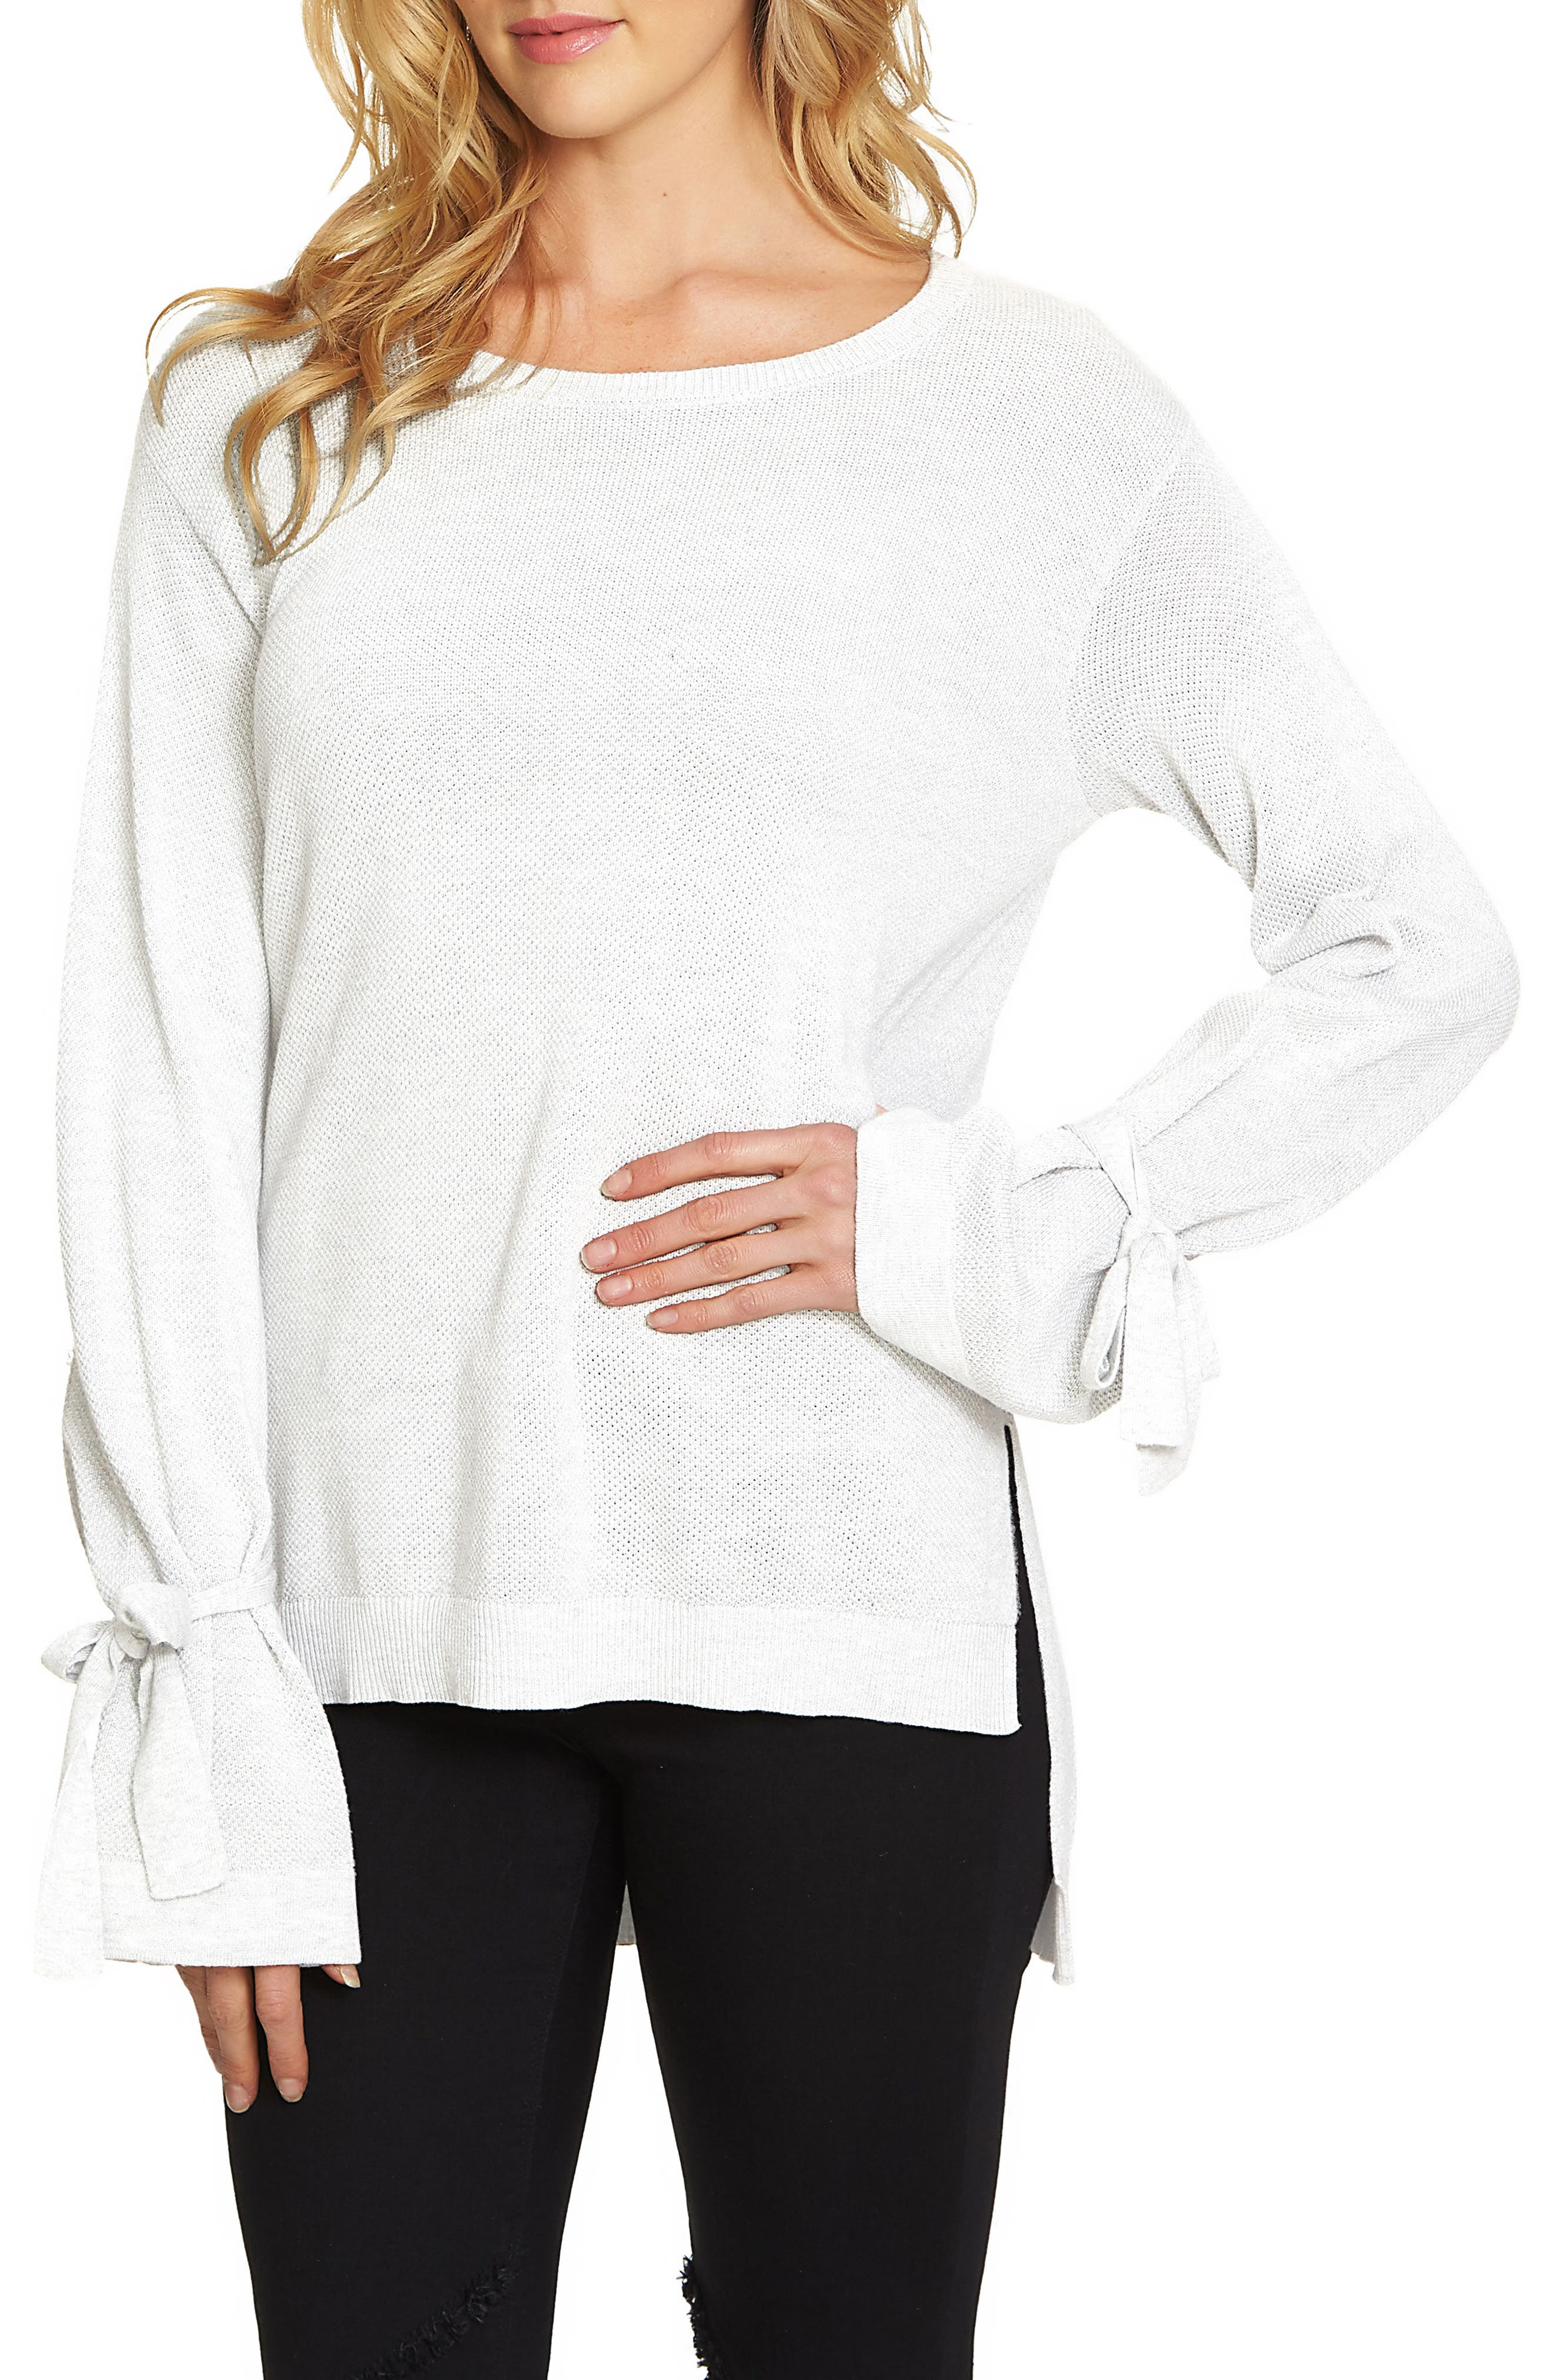 Main Image - 1.STATE Tie Sleeve Sweater